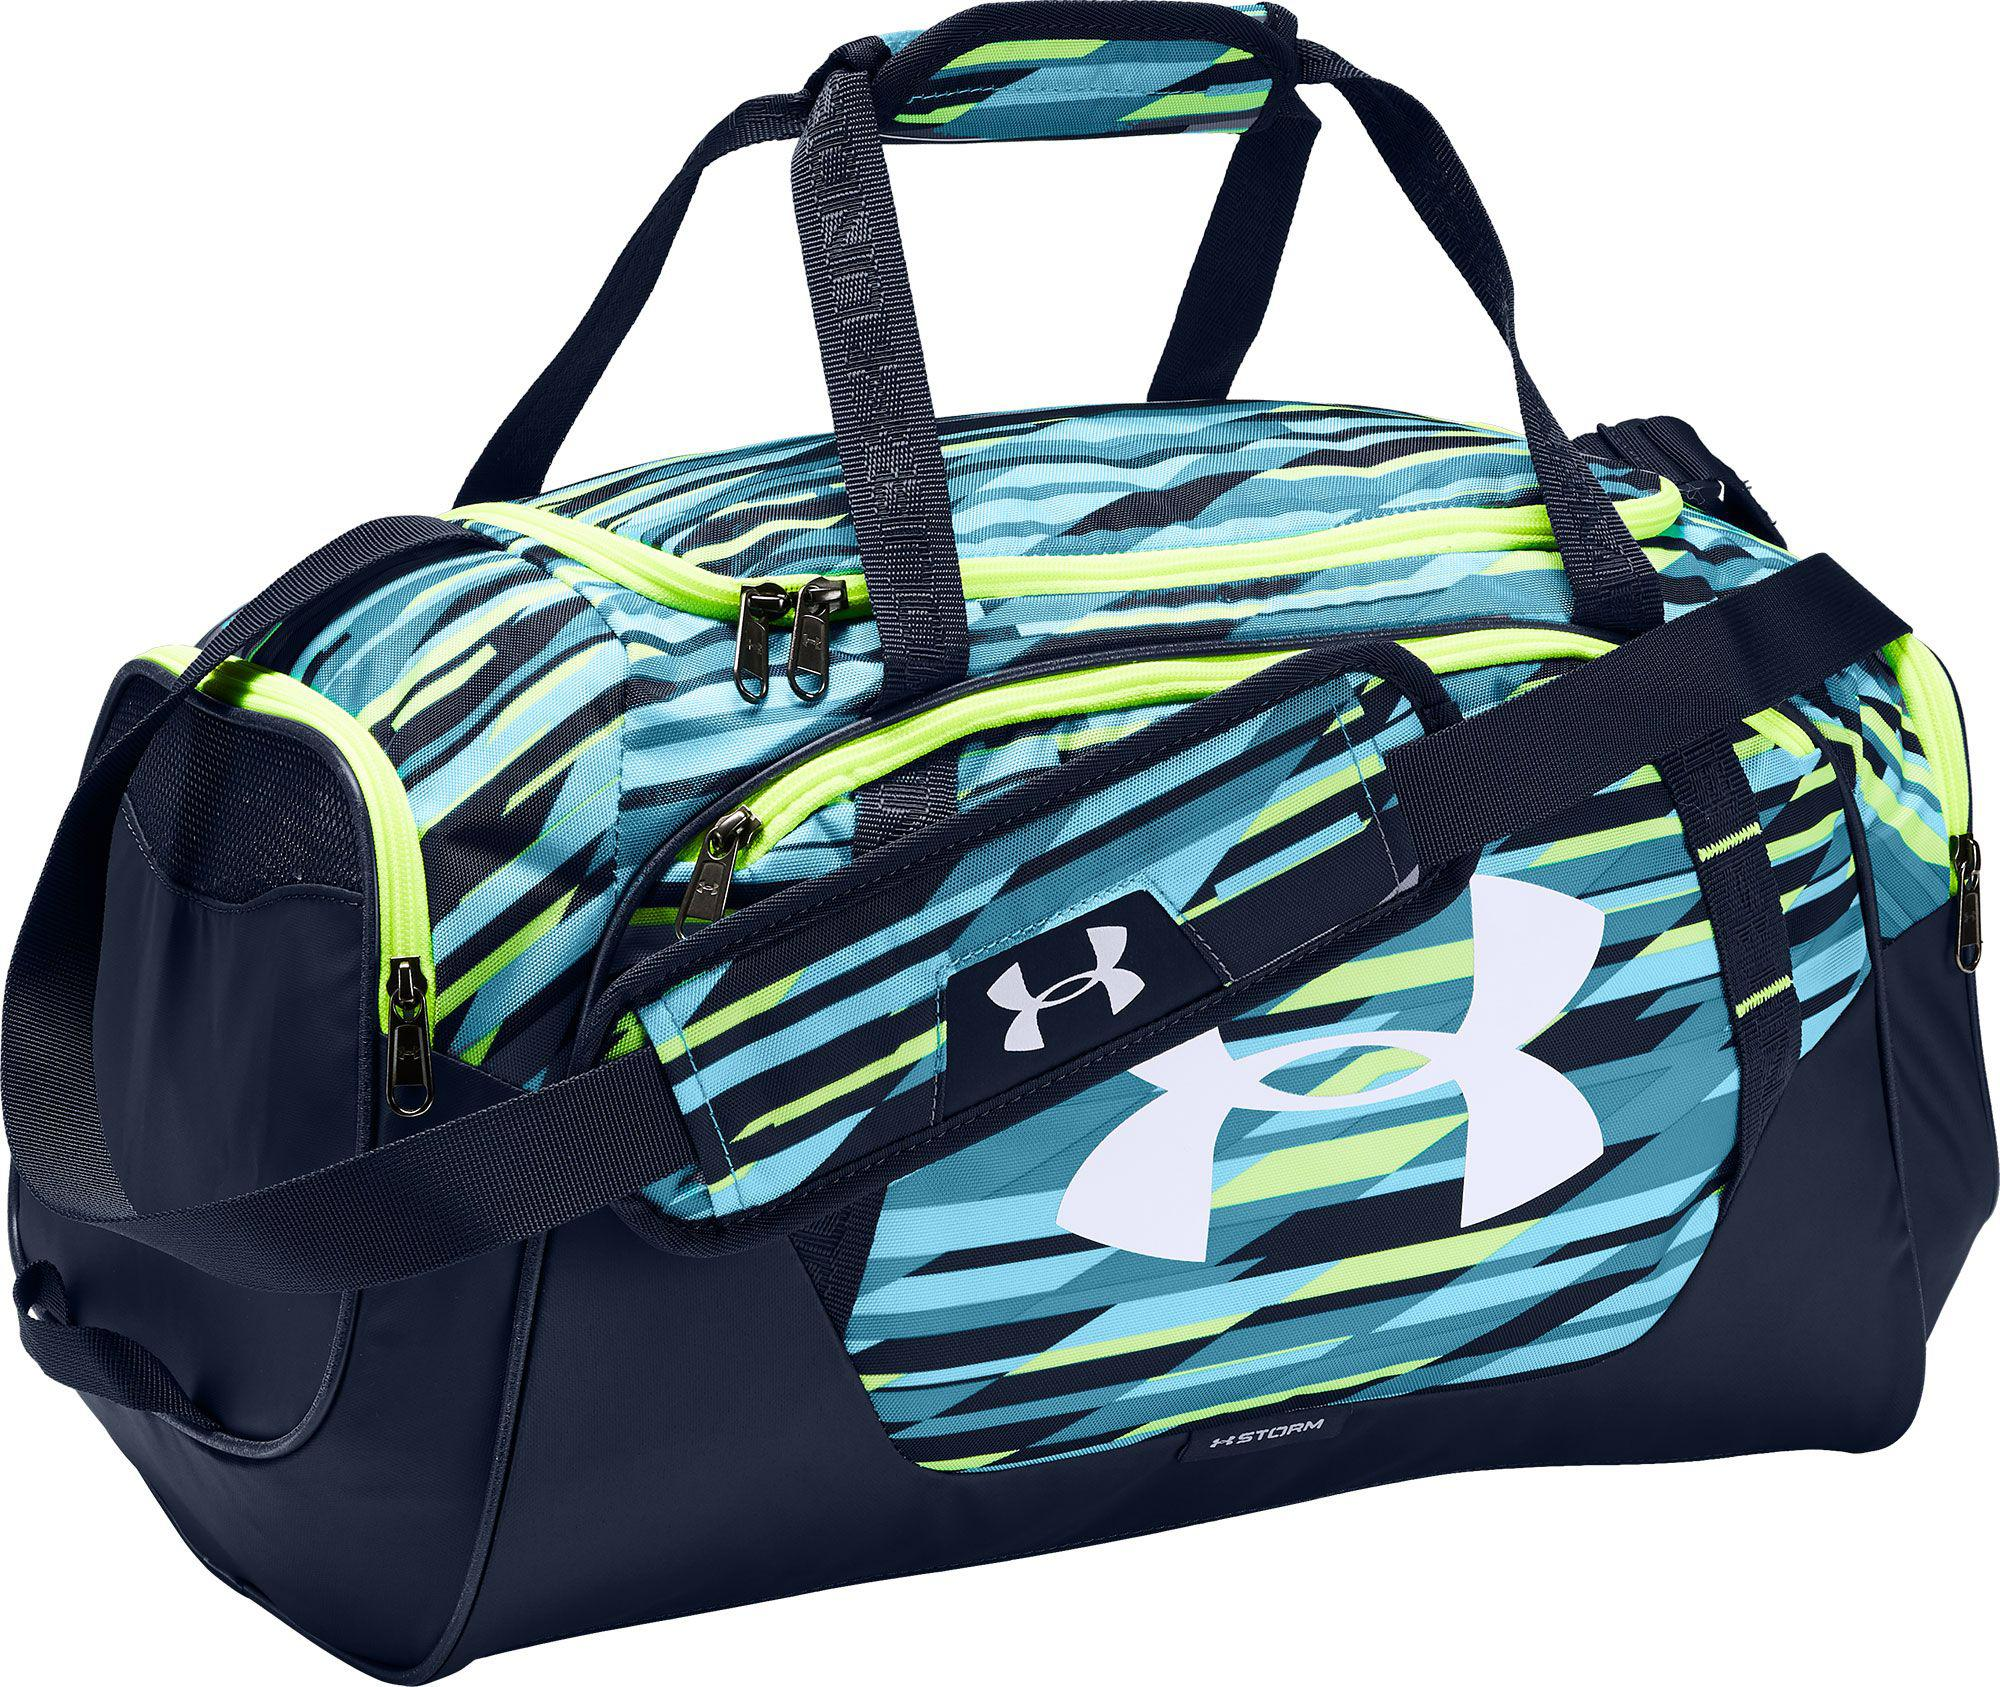 Lyst - Under Armour Undeniable 3.0 Small Duffle Bag in Blue for Men 4902a4e7df771